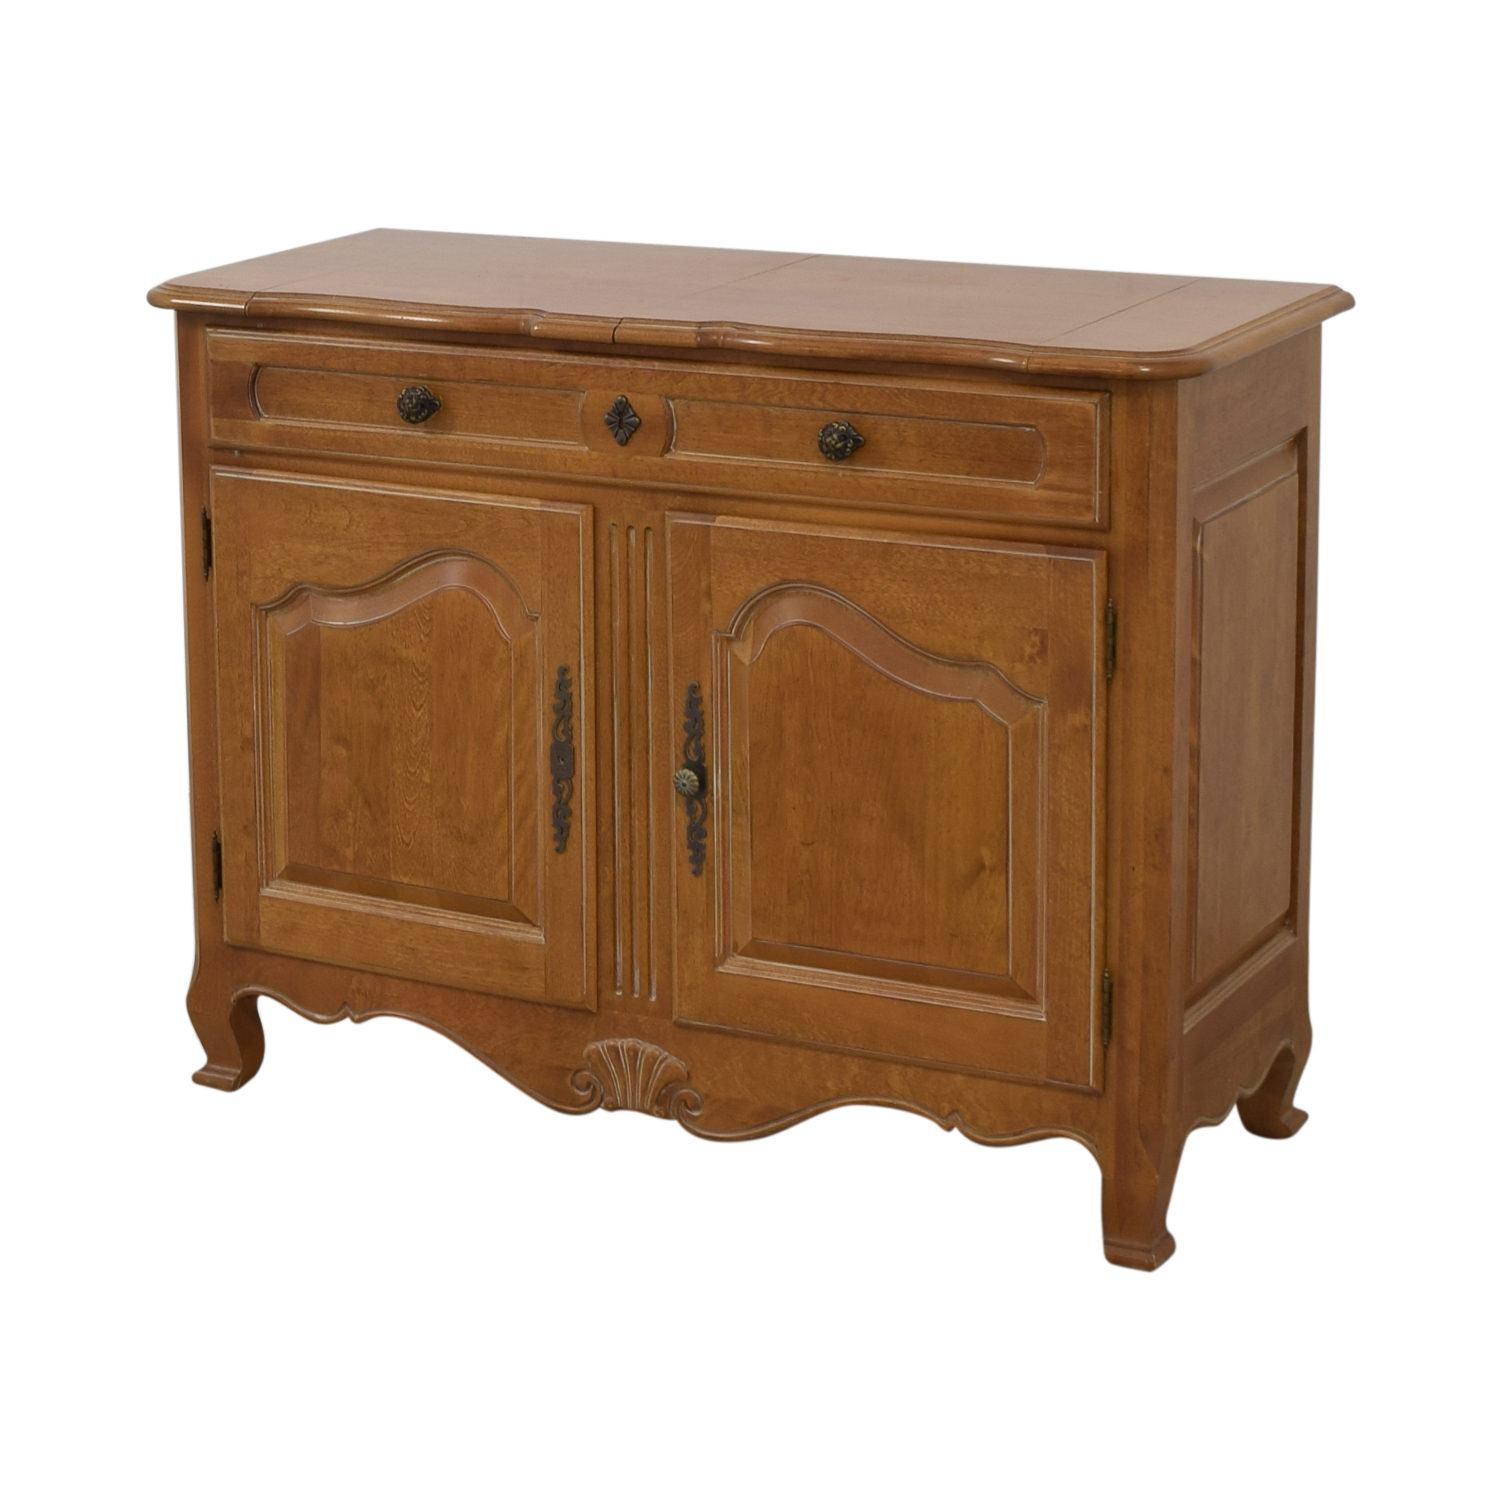 Ethan Allen Ethan Allen Country French Server nj